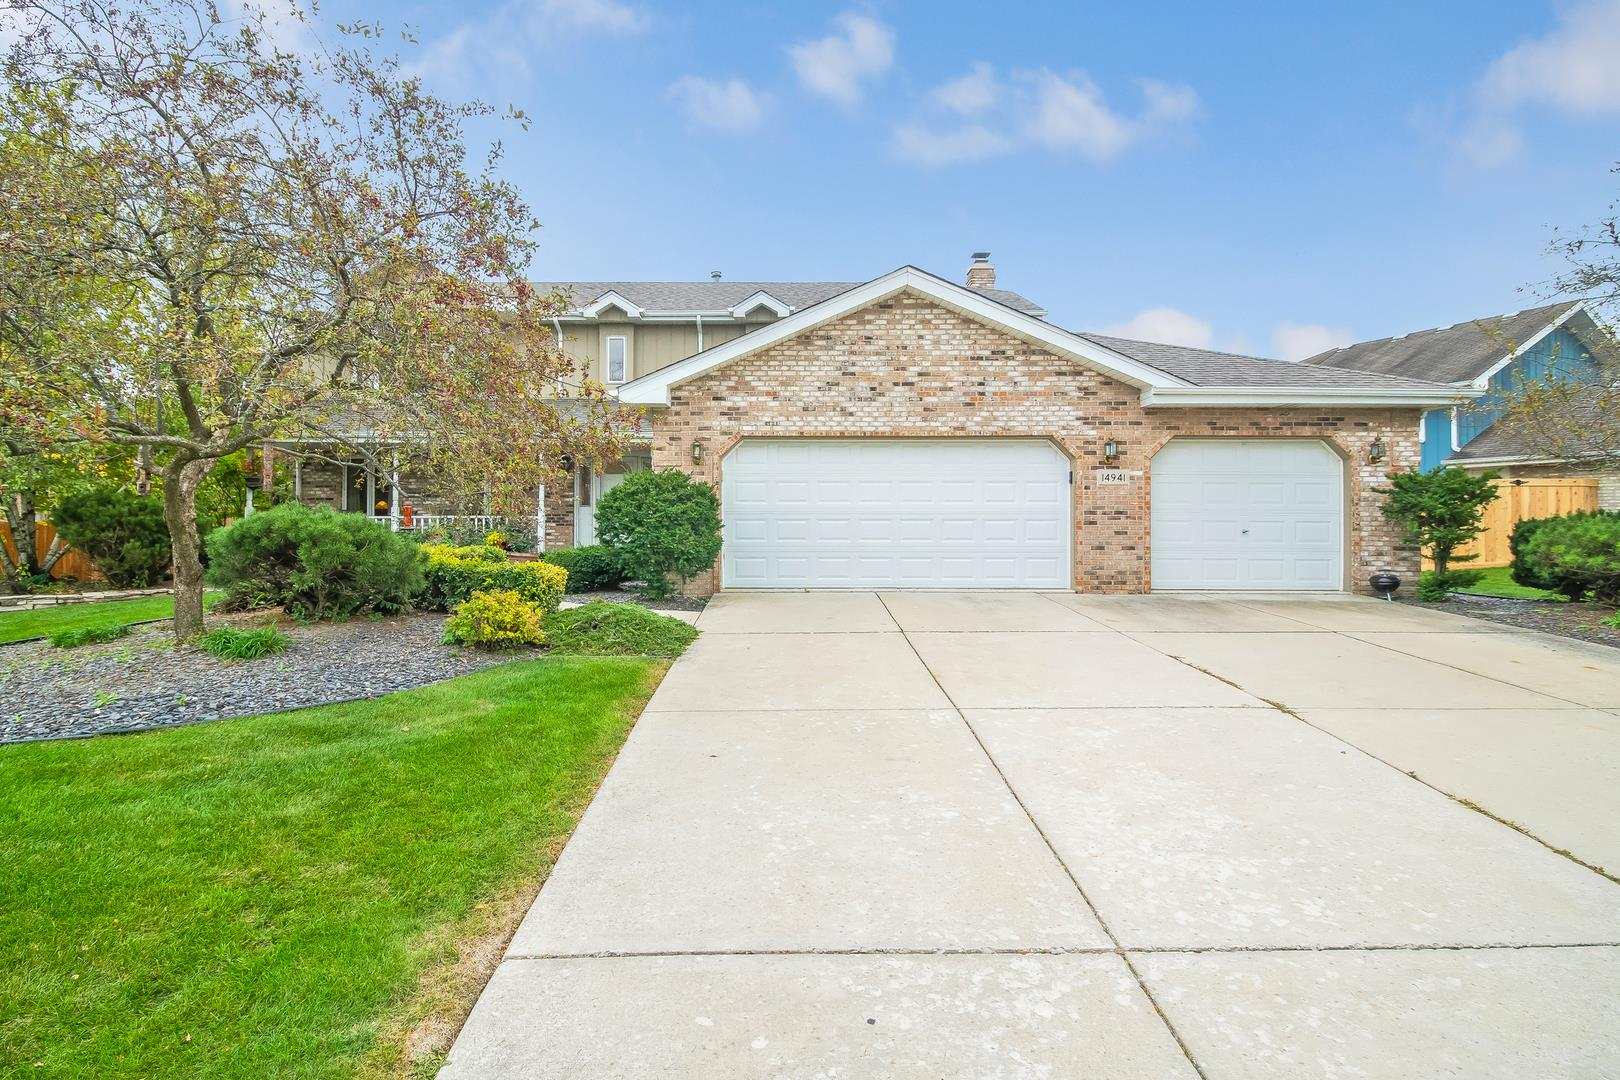 14941 Eagle Ridge Drive, Homer Glen, IL 60491 - #: 10892996